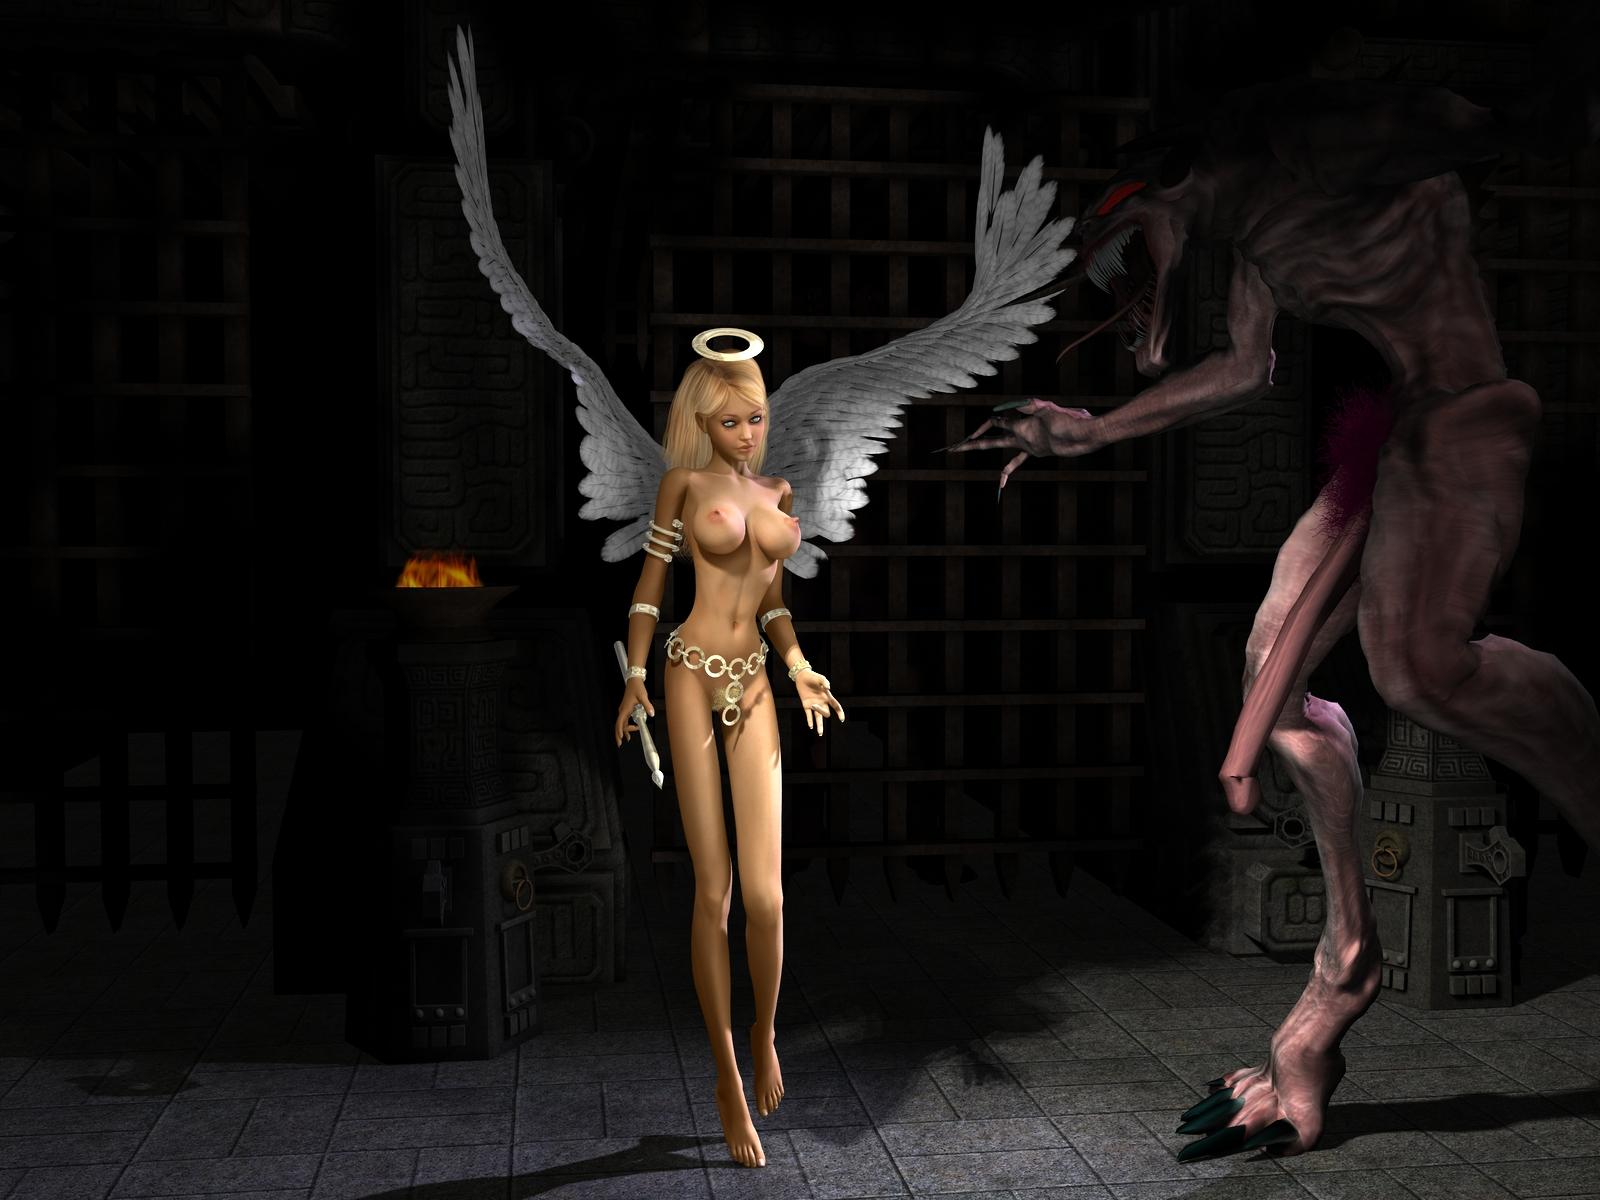 3d angels fucking with demons pics hentai streaming